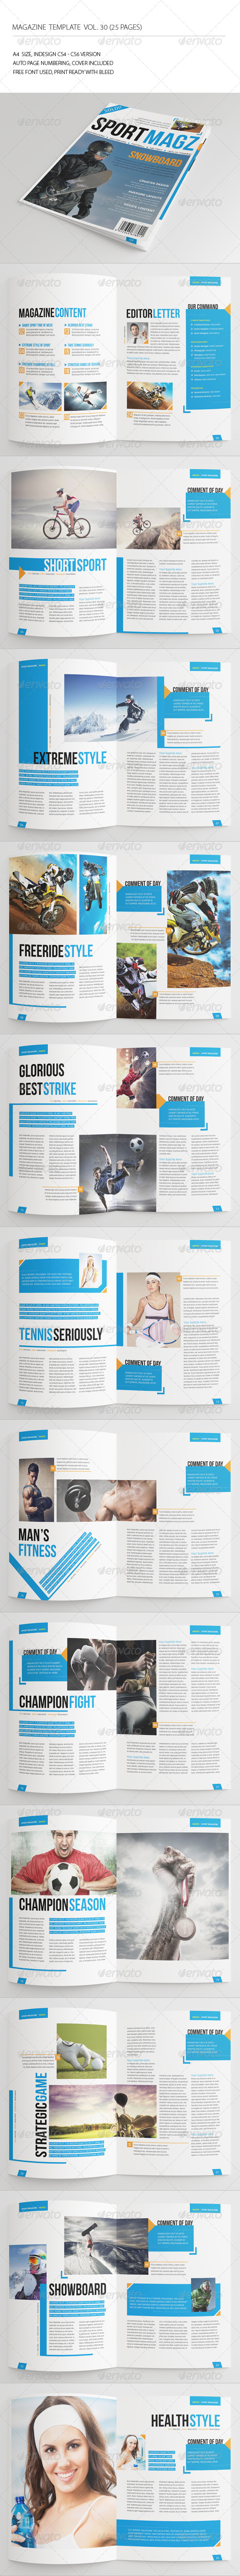 25 Pages Sport Magazine Vol30 - Magazines Print Templates